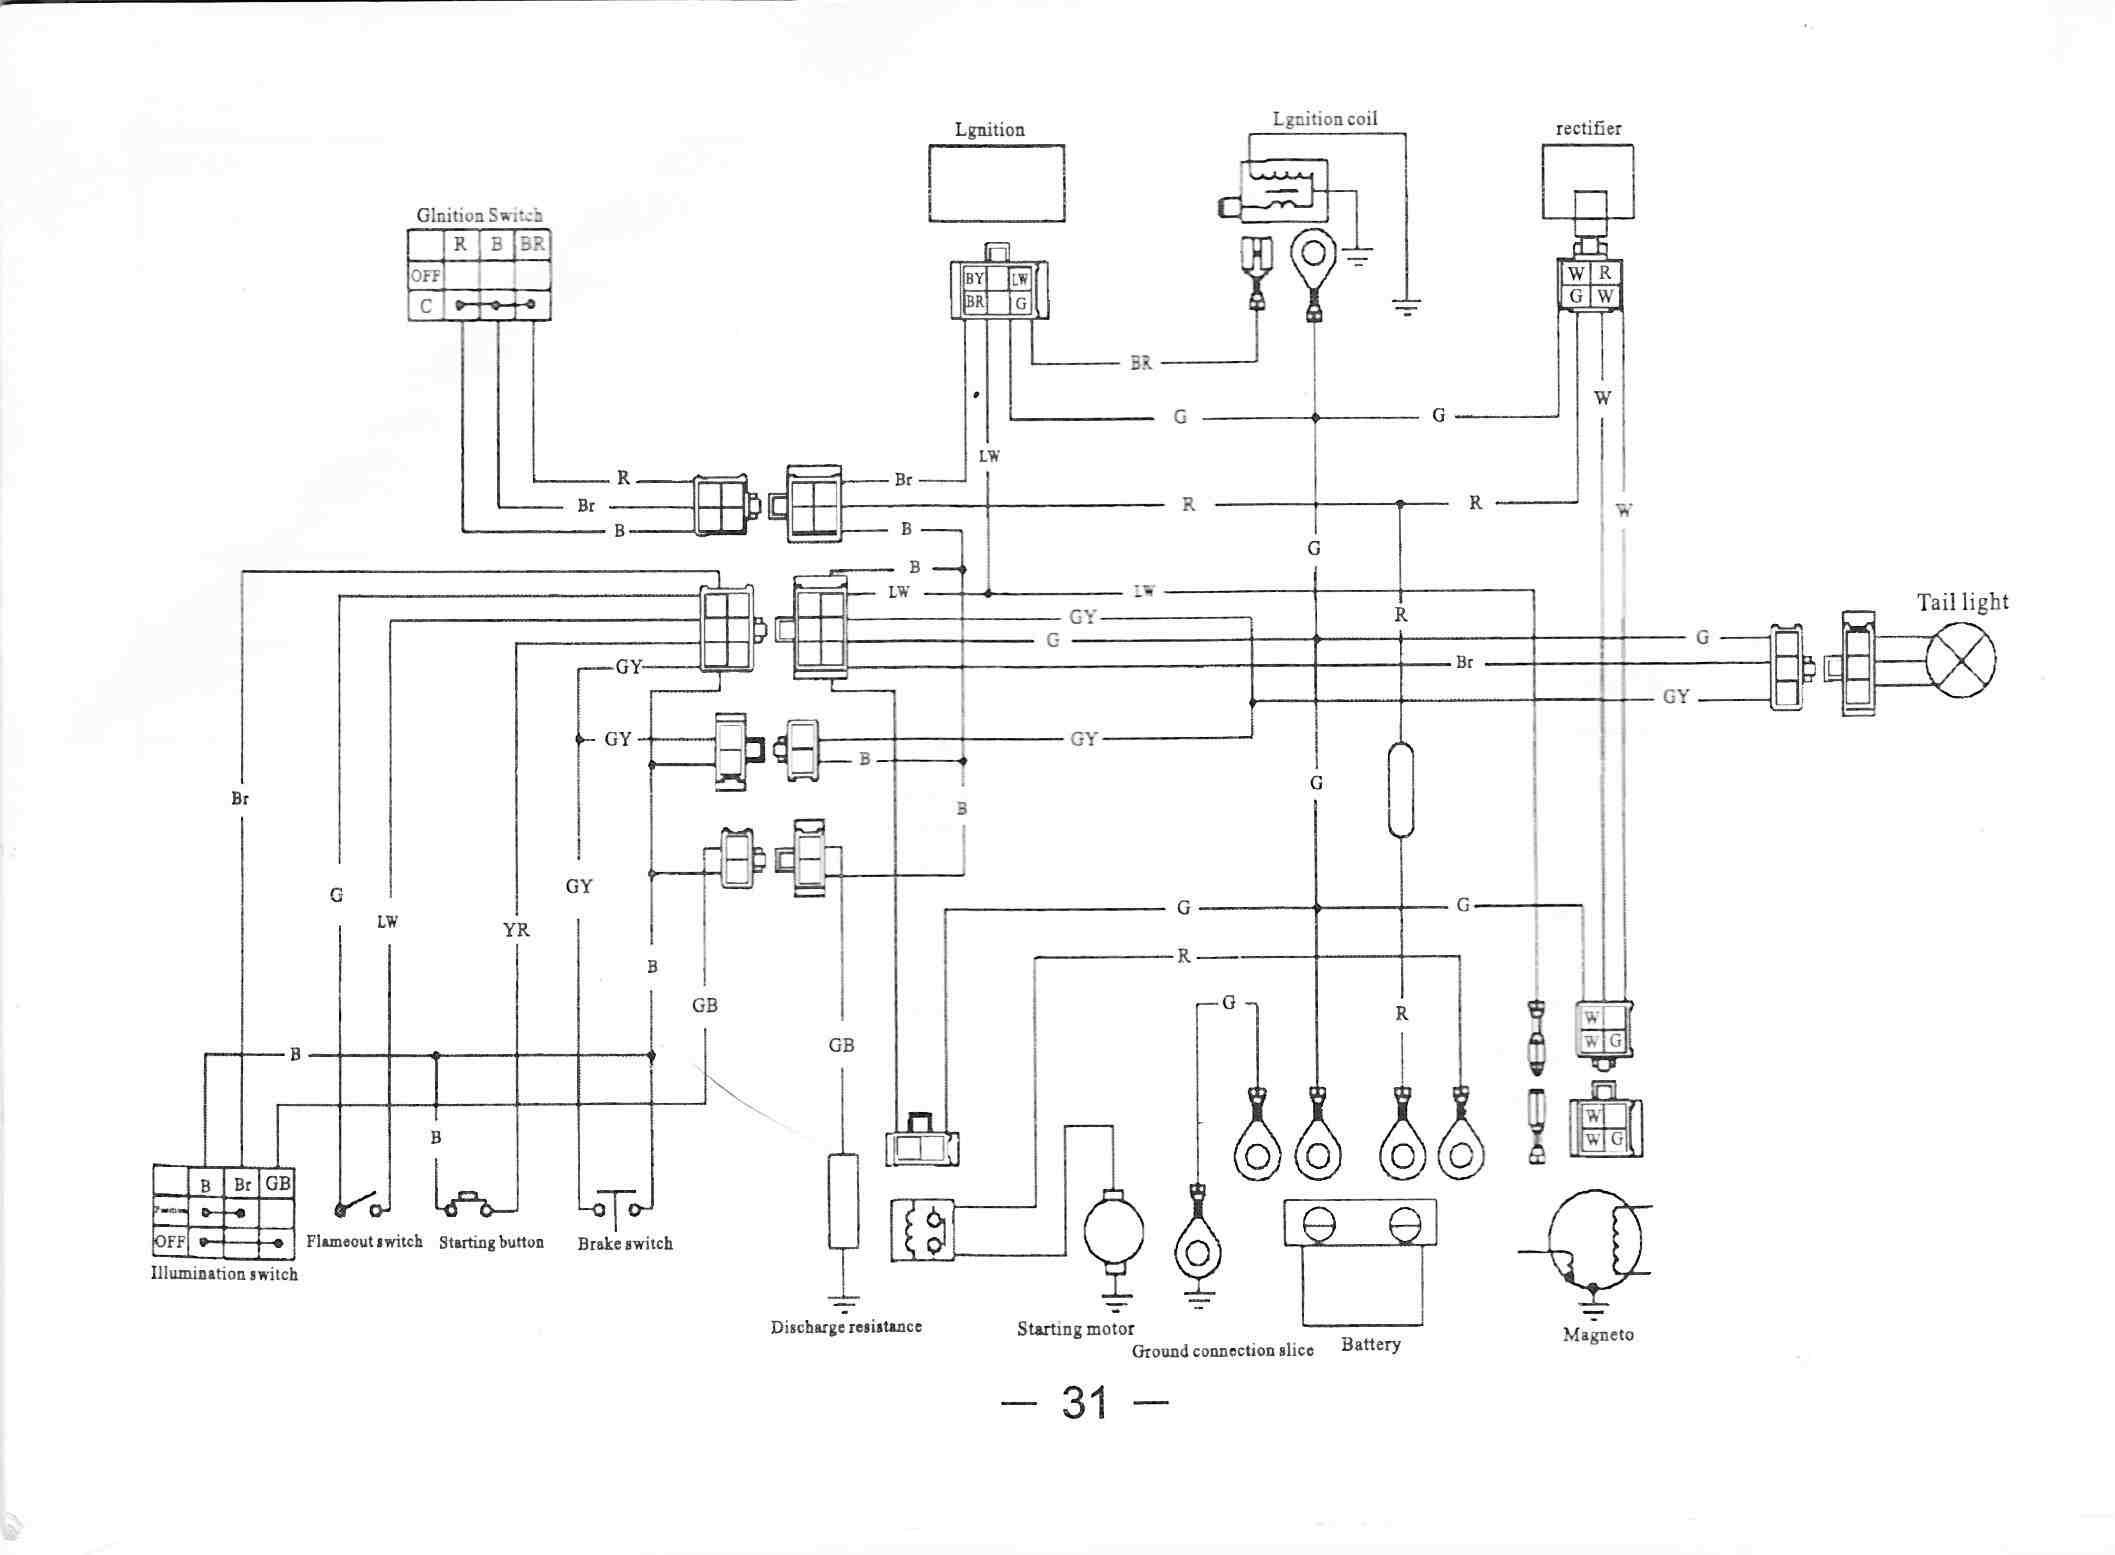 timberwolf 250 atv wiring diagram wiring diagram writetimberwolf atv wiring diagrams for electronic schematics collections yamaha grizzly 600 wiring diagram timberwolf 250 atv wiring diagram